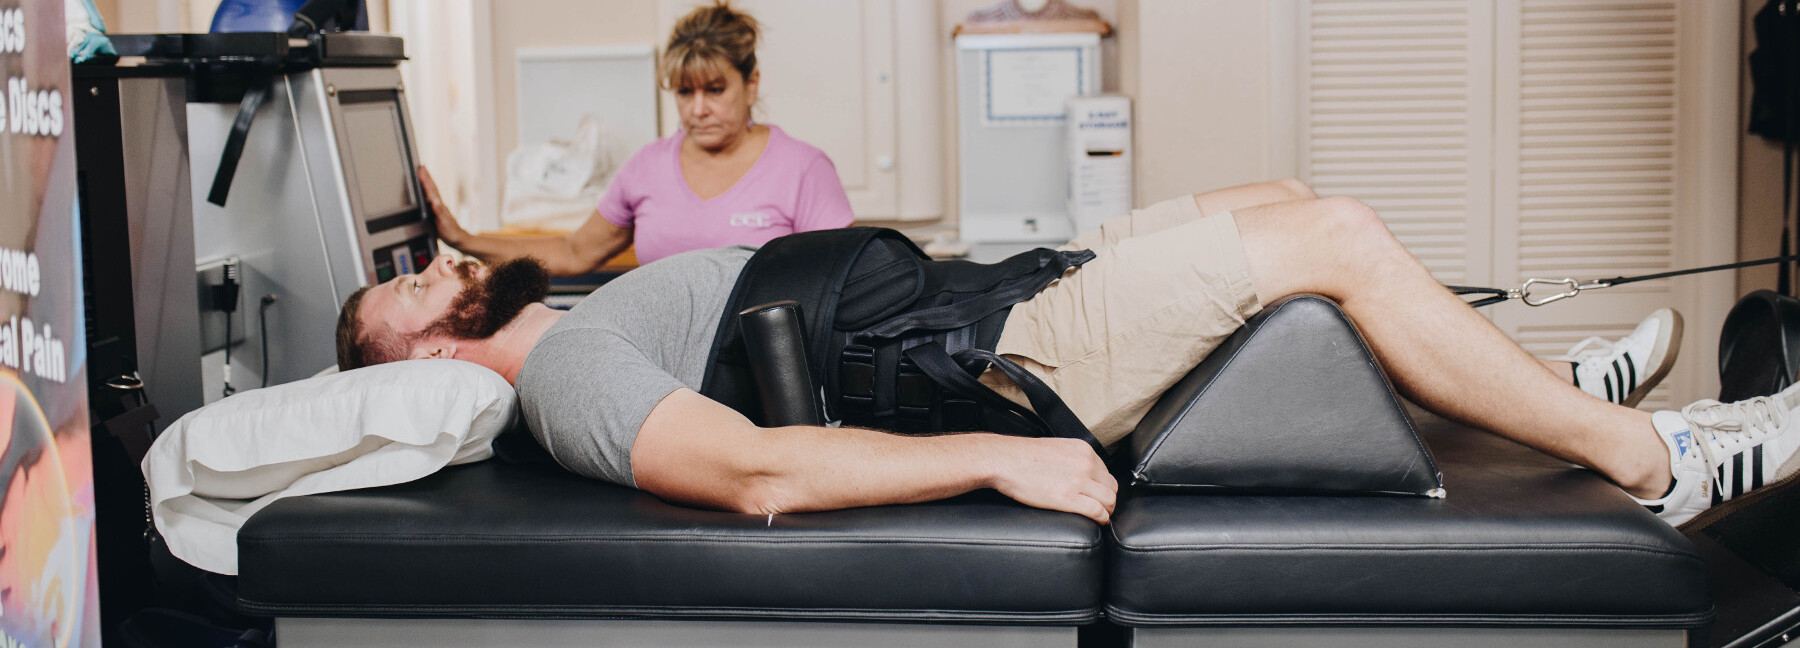 Spinal Decompression - Chiropractic Center of Lakeland